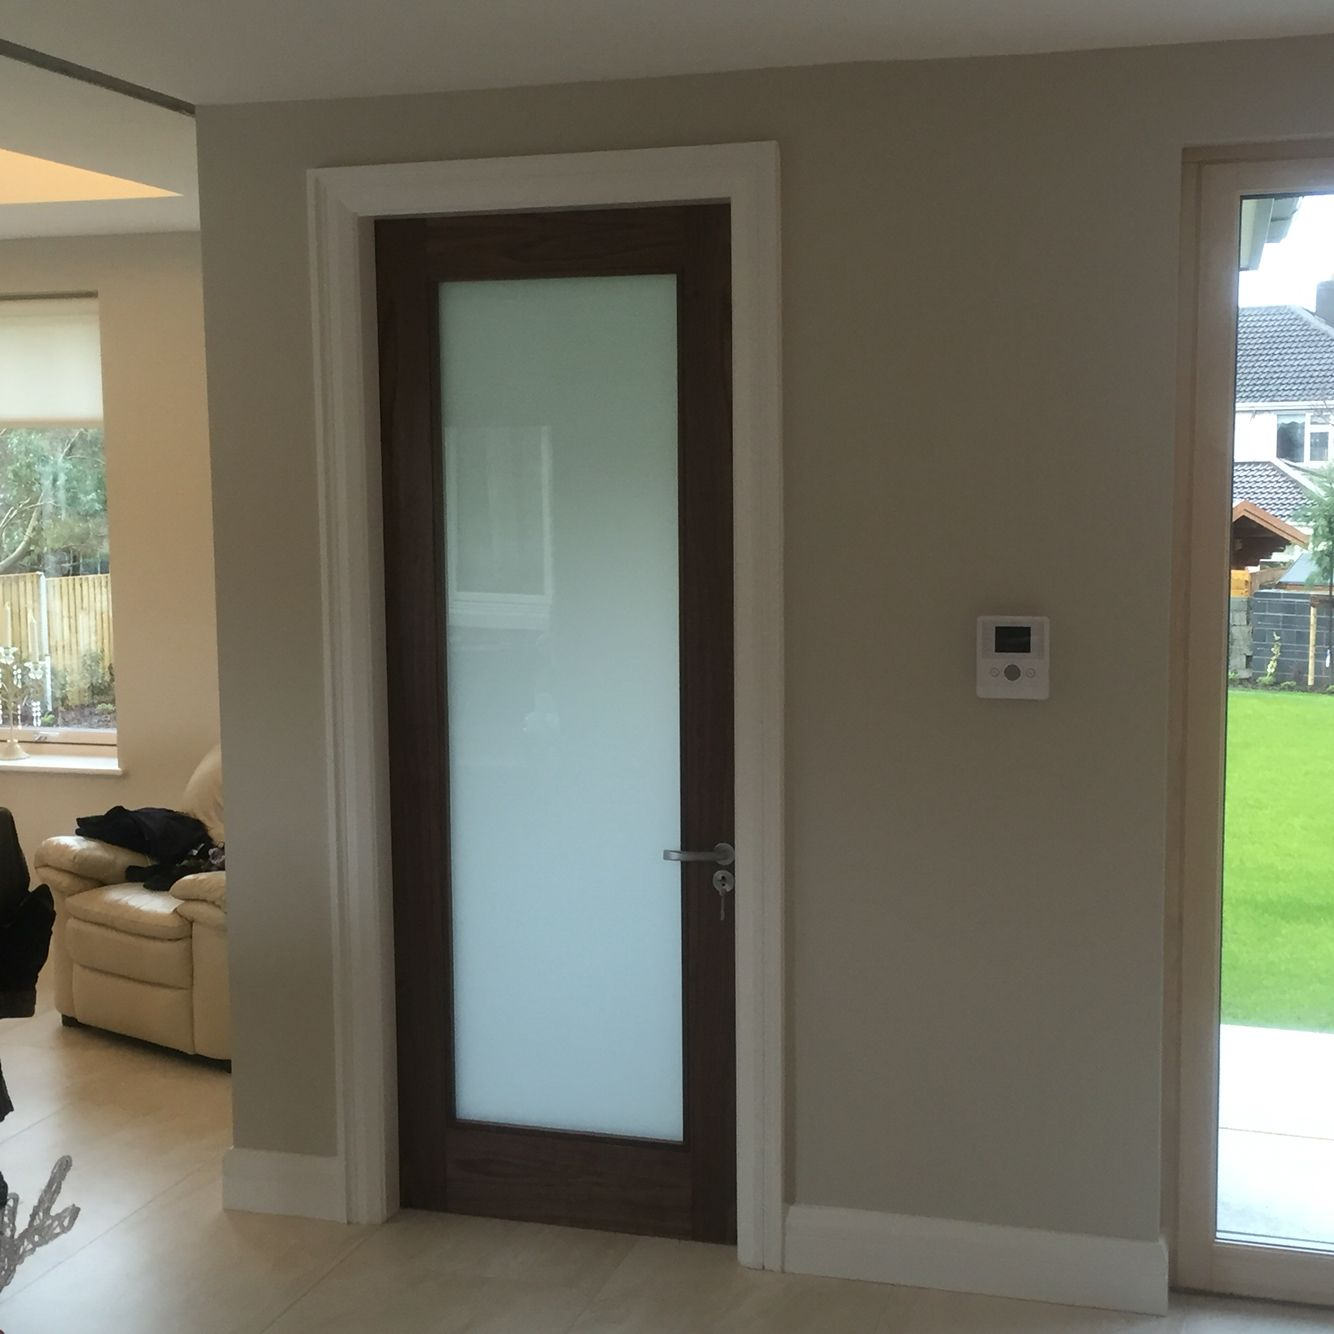 Le Meilleur Walnut Internal Door With Frosted Glass Versatility Of Ce Mois Ci